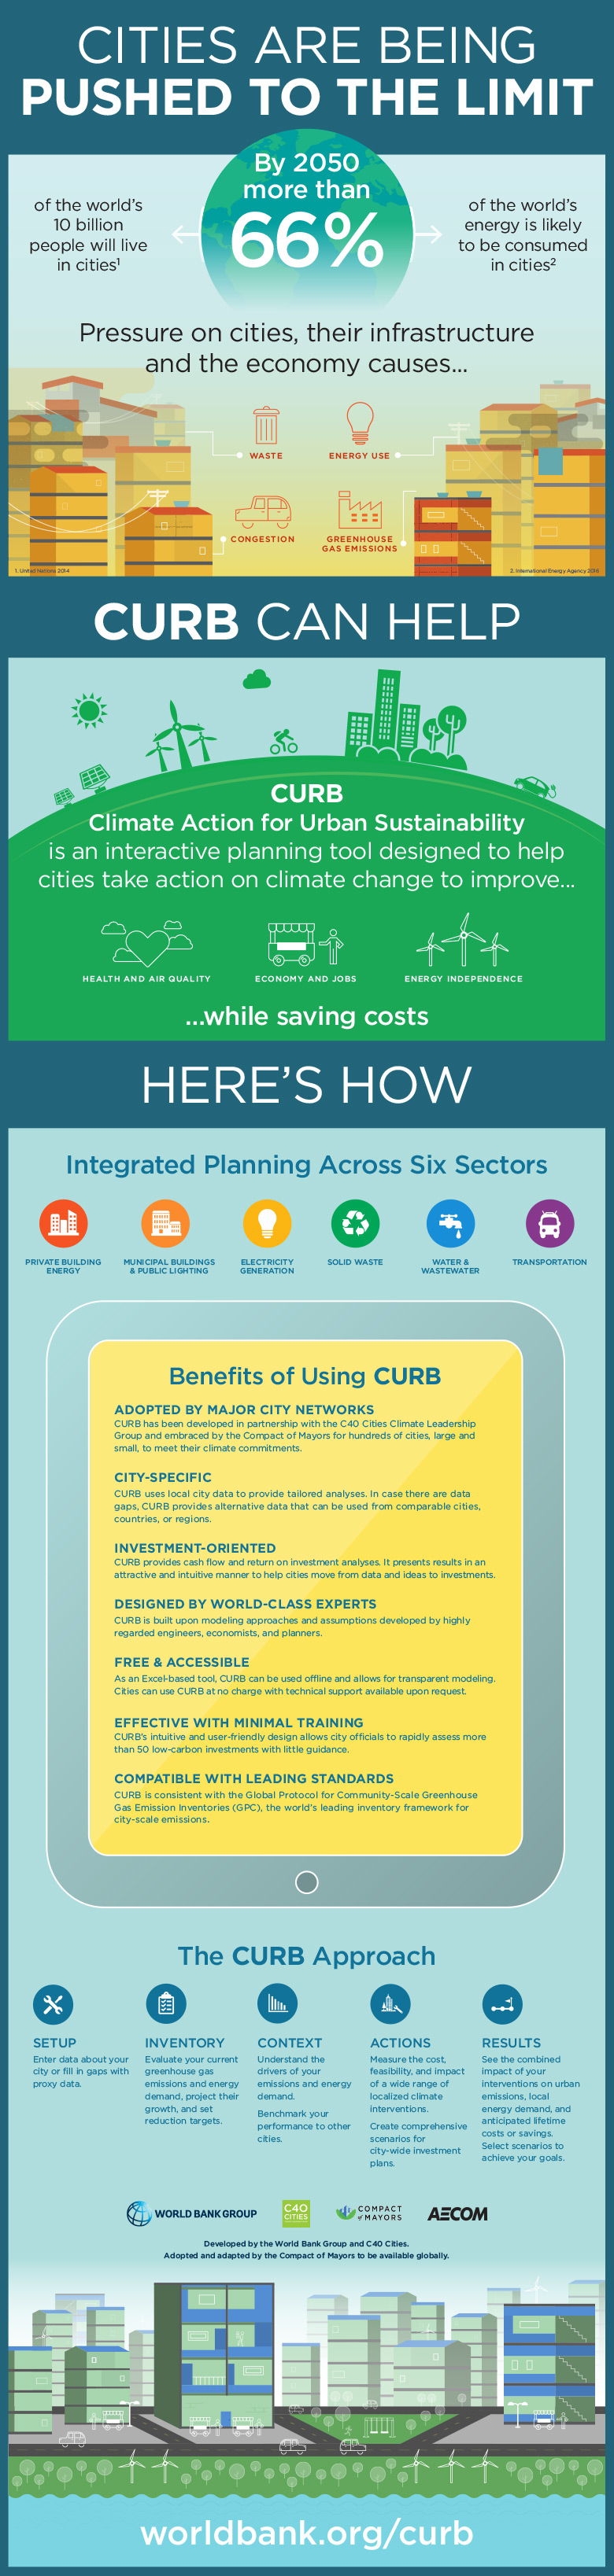 Infographic for CURB Tool: Climate Action for Urban Sustainability